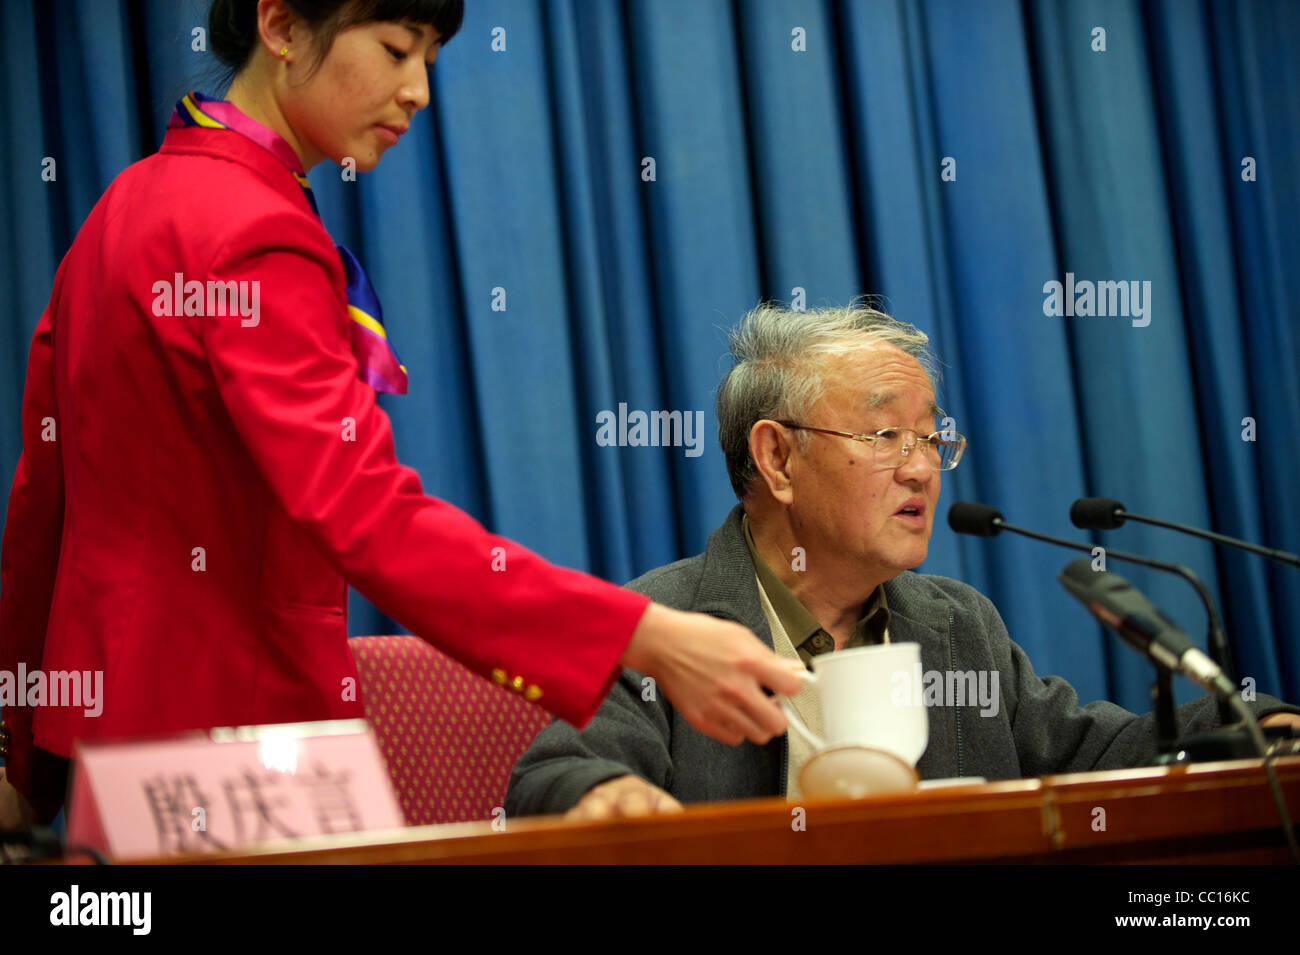 Wei Jianlin, an expert, gives a lecture to cadre students in Beijing Communist Party School in Beijing, China. 21 - Stock Image